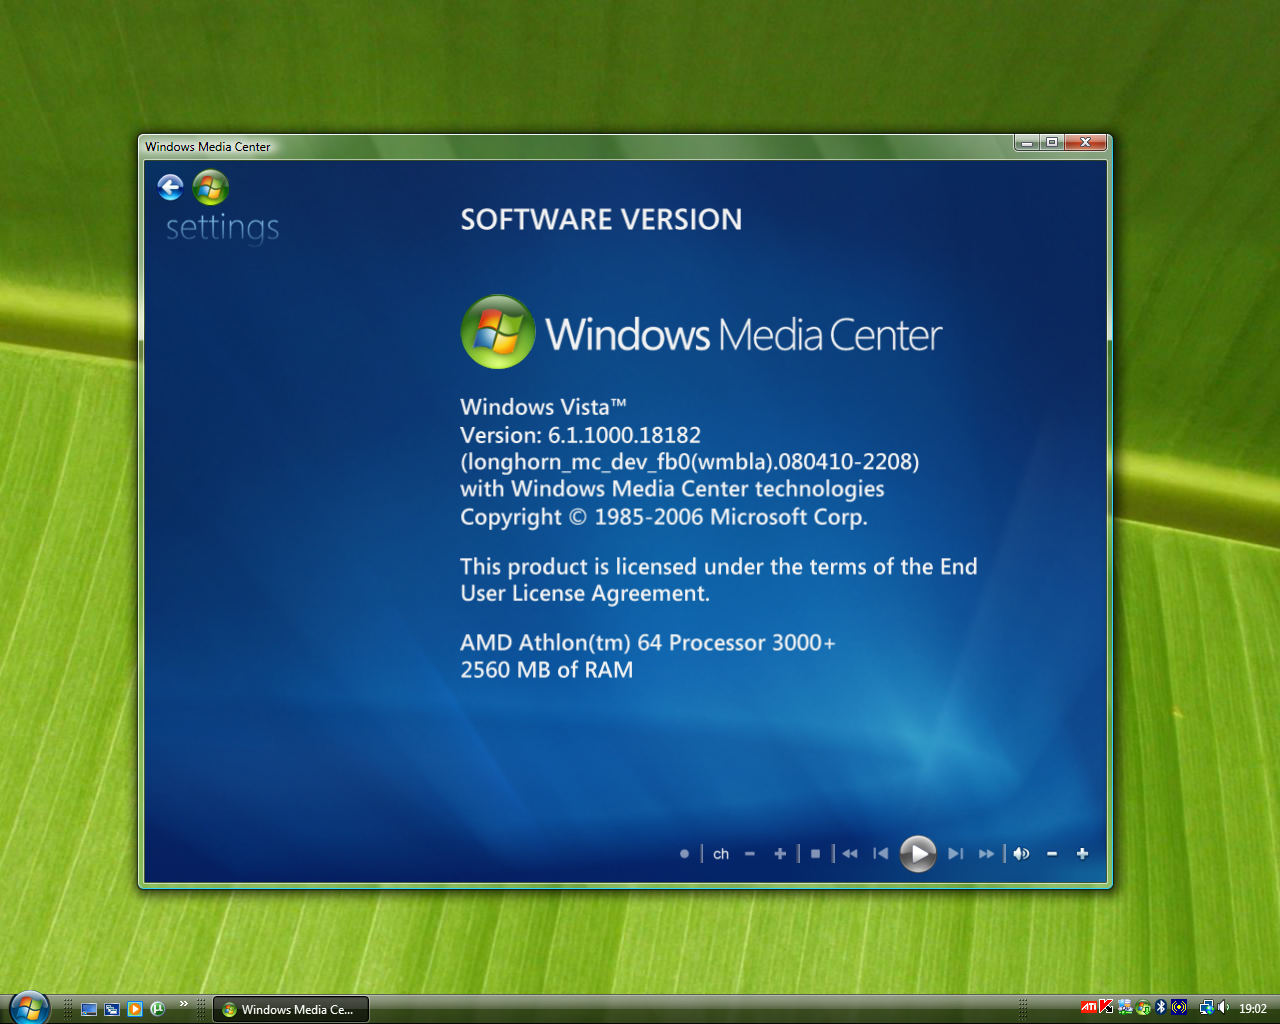 Vista windows media center updates hp printer does not support windows 7